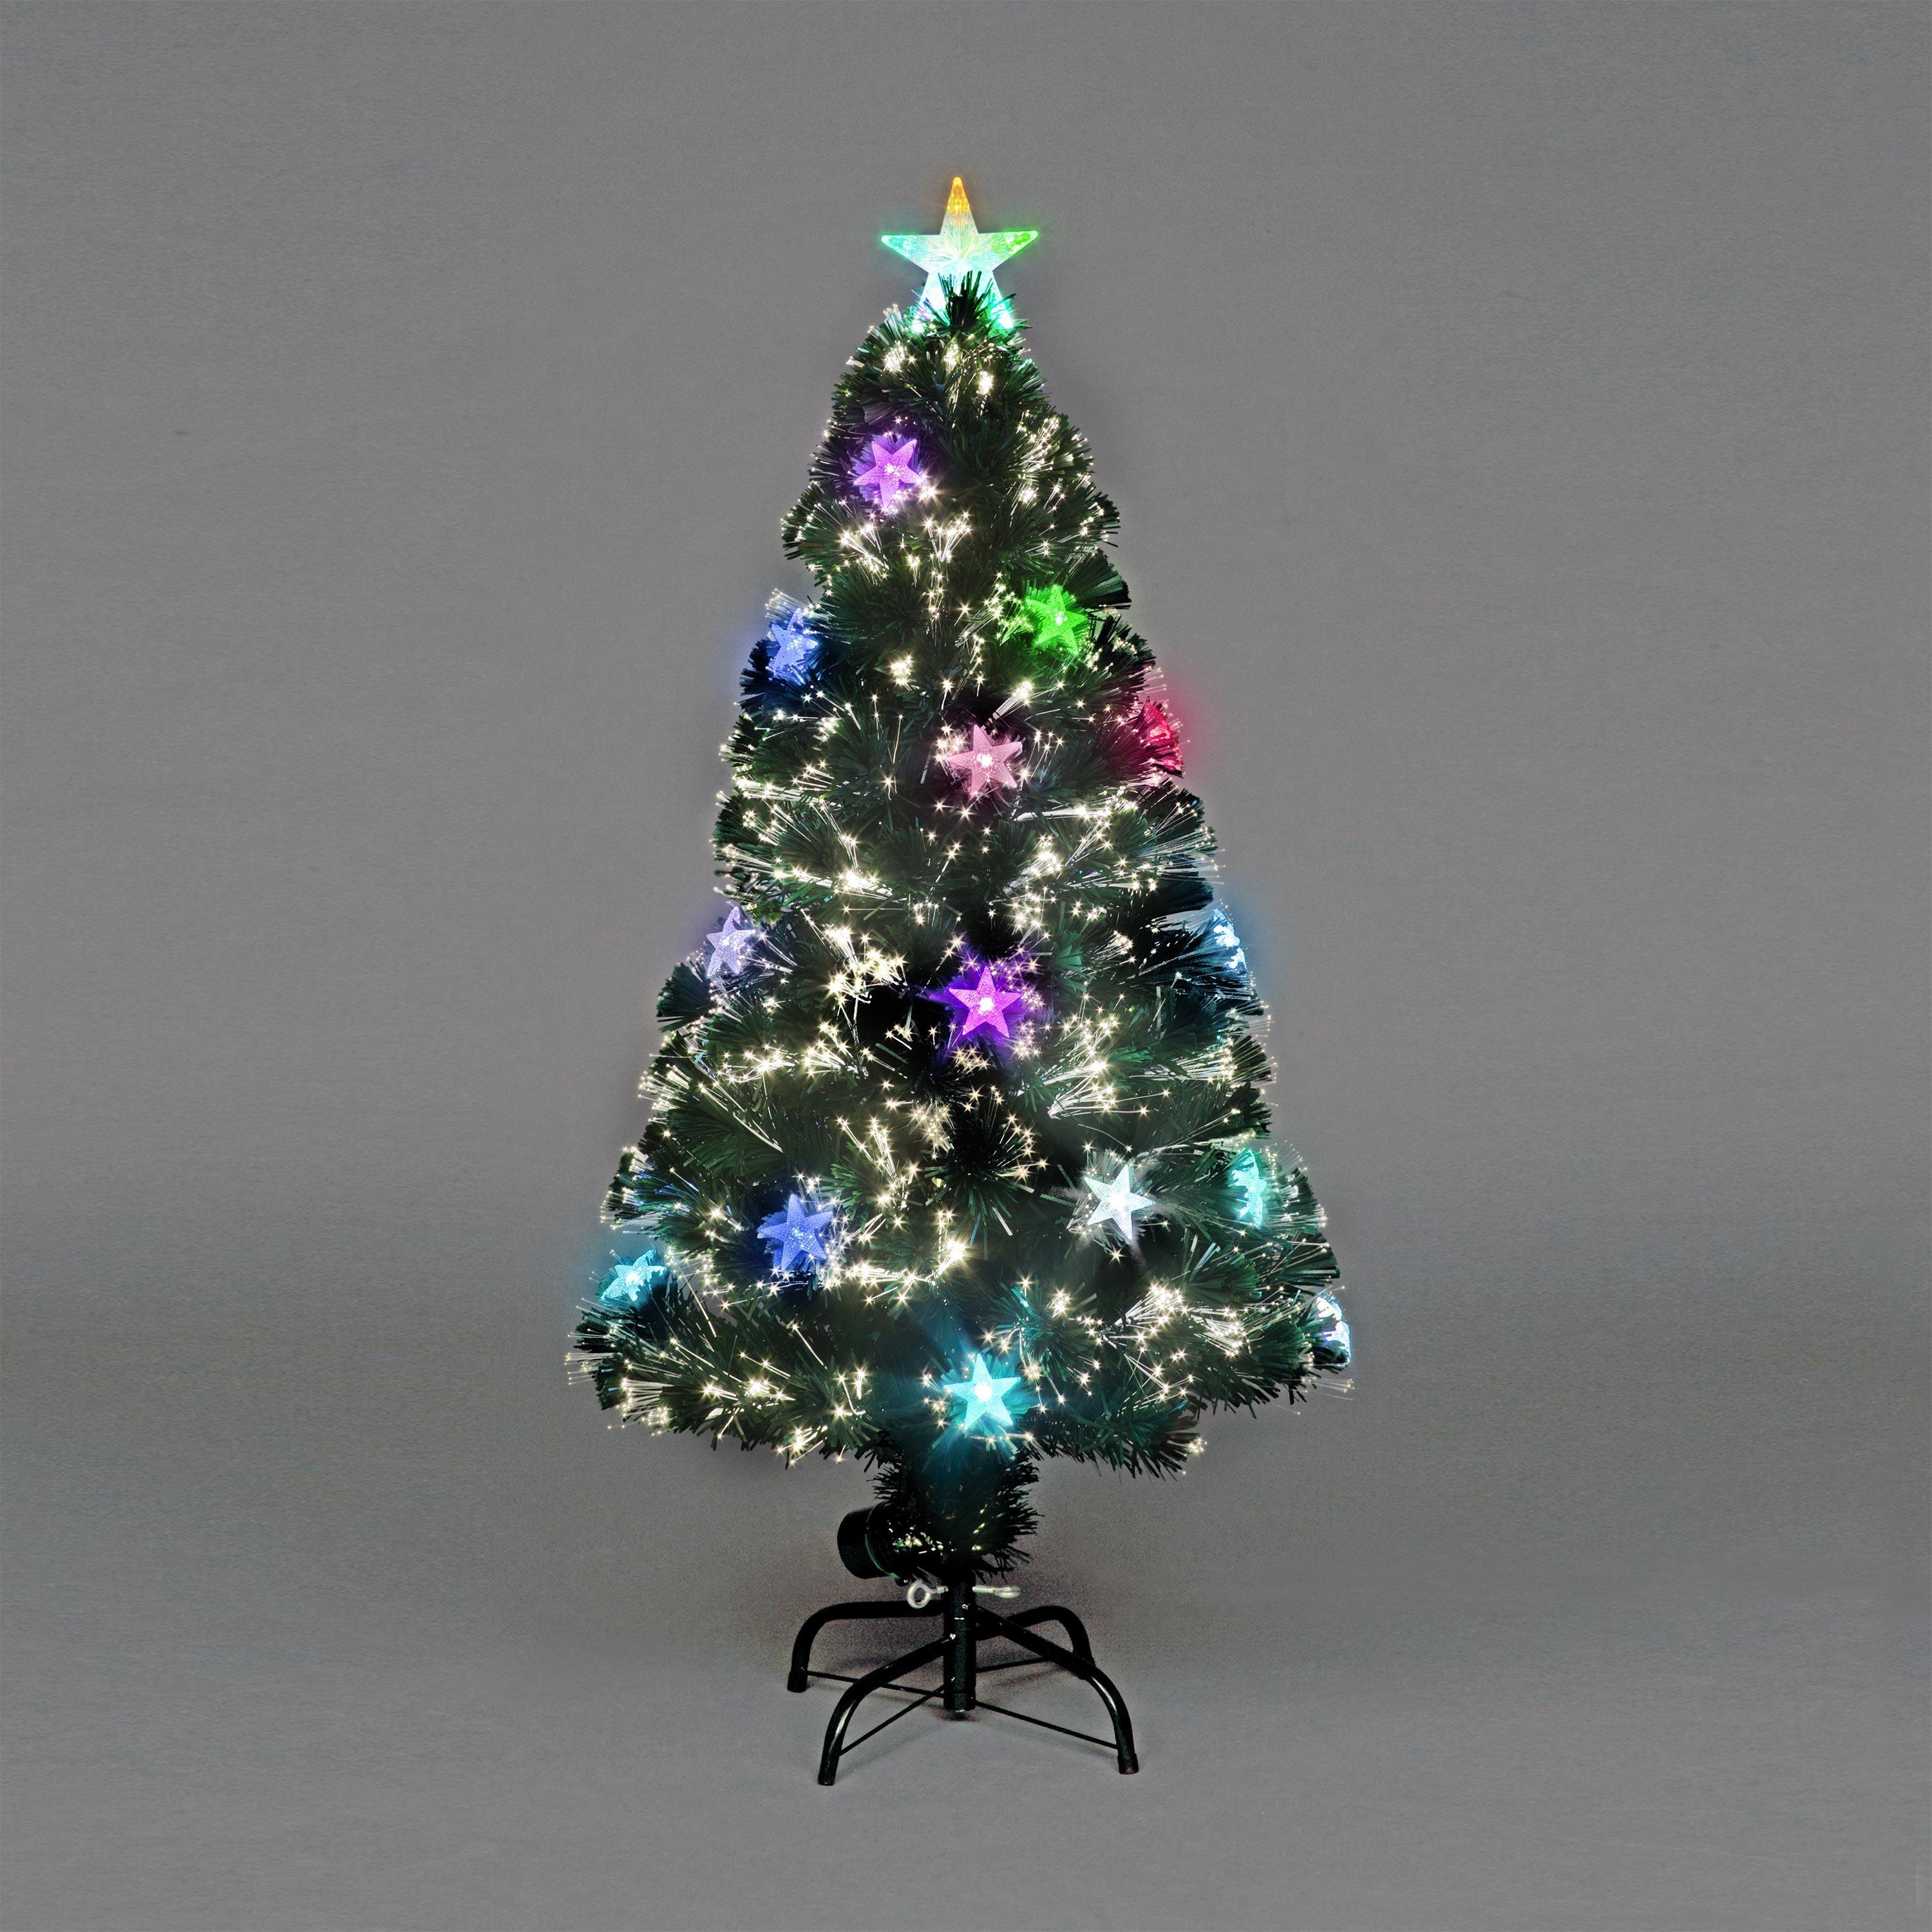 3ft Christmas Trees Artificial: Christmas Tree 3ft 4ft 5ft 6ft Cosmos Fibre-Optic